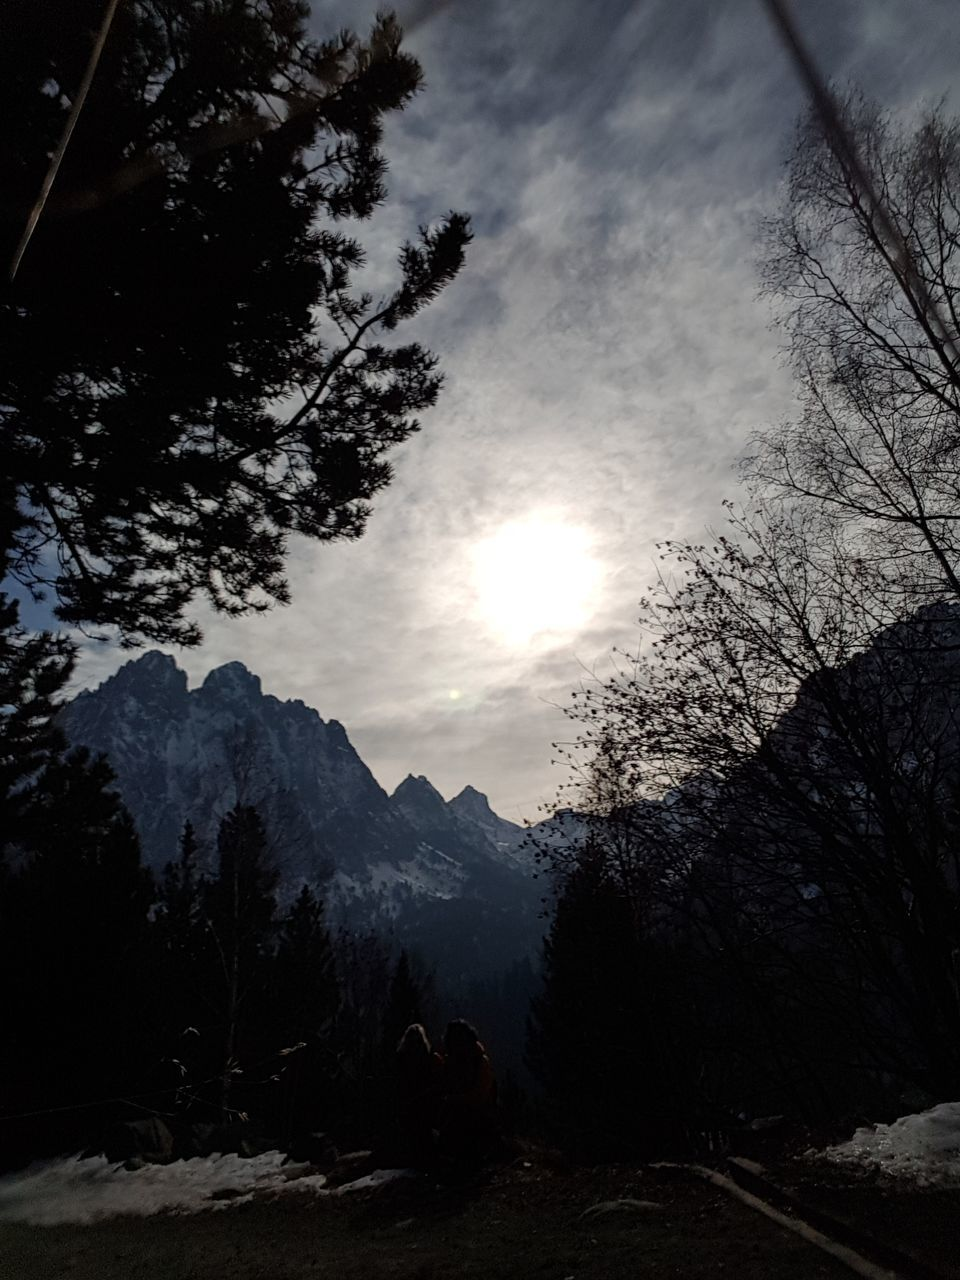 mountain, tree, nature, sky, silhouette, adventure, real people, beauty in nature, sun, sunset, tranquility, scenics, mountain range, outdoors, winter, men, day, people